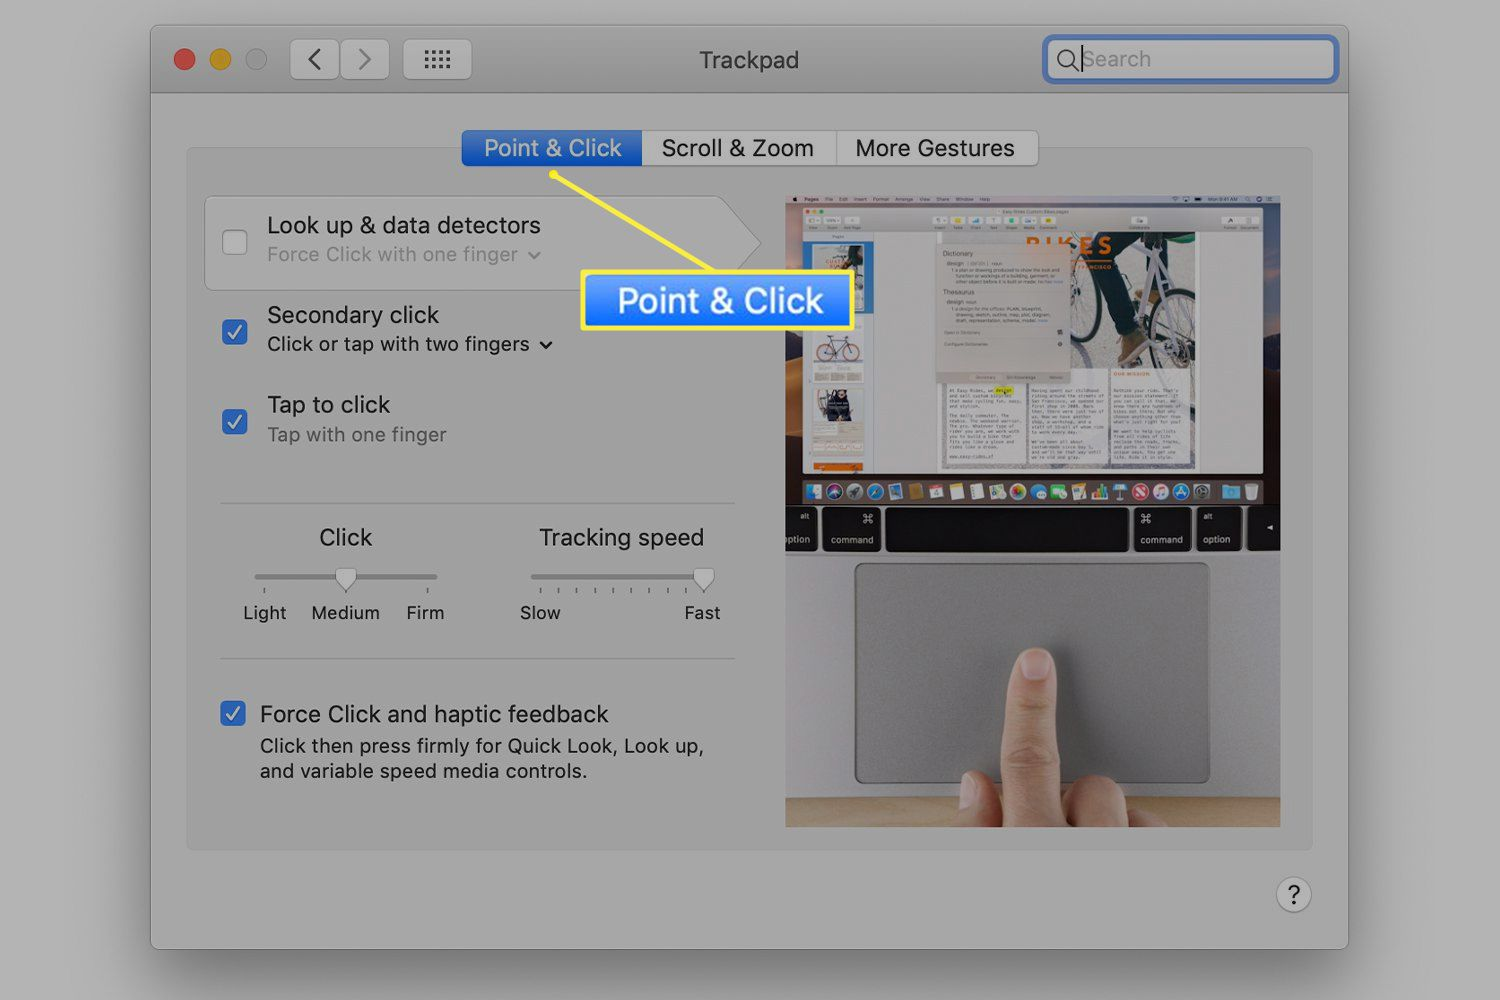 Trackpad preferences with the Point & Click tab selected